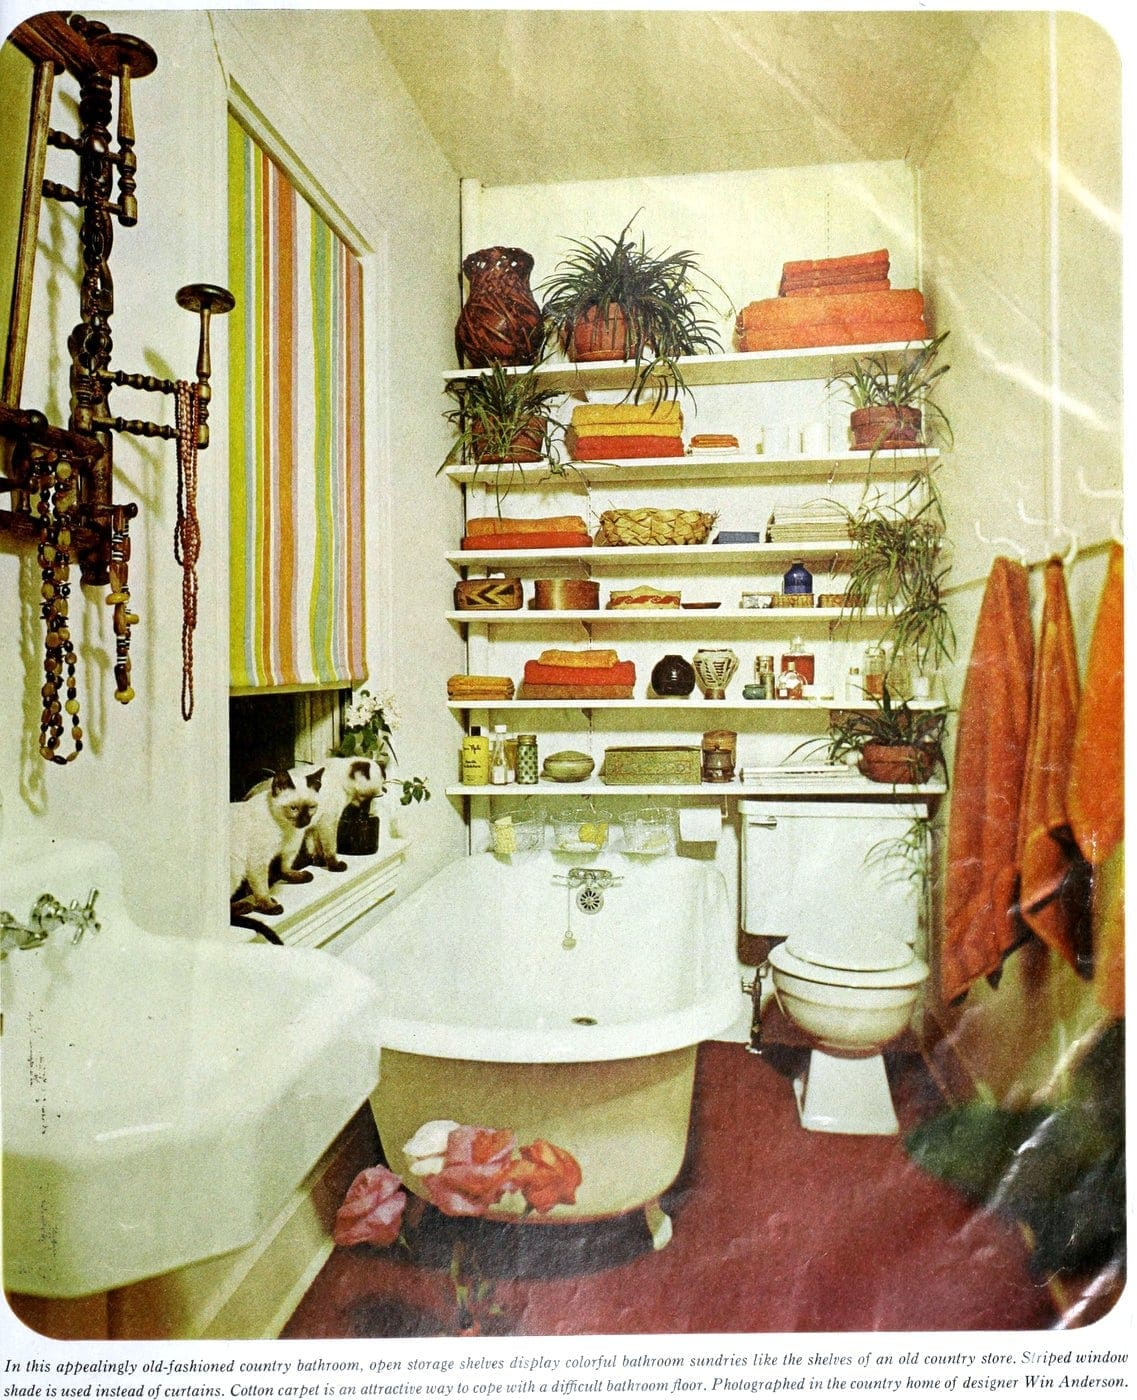 Vintage '60s bathrooms - Country style